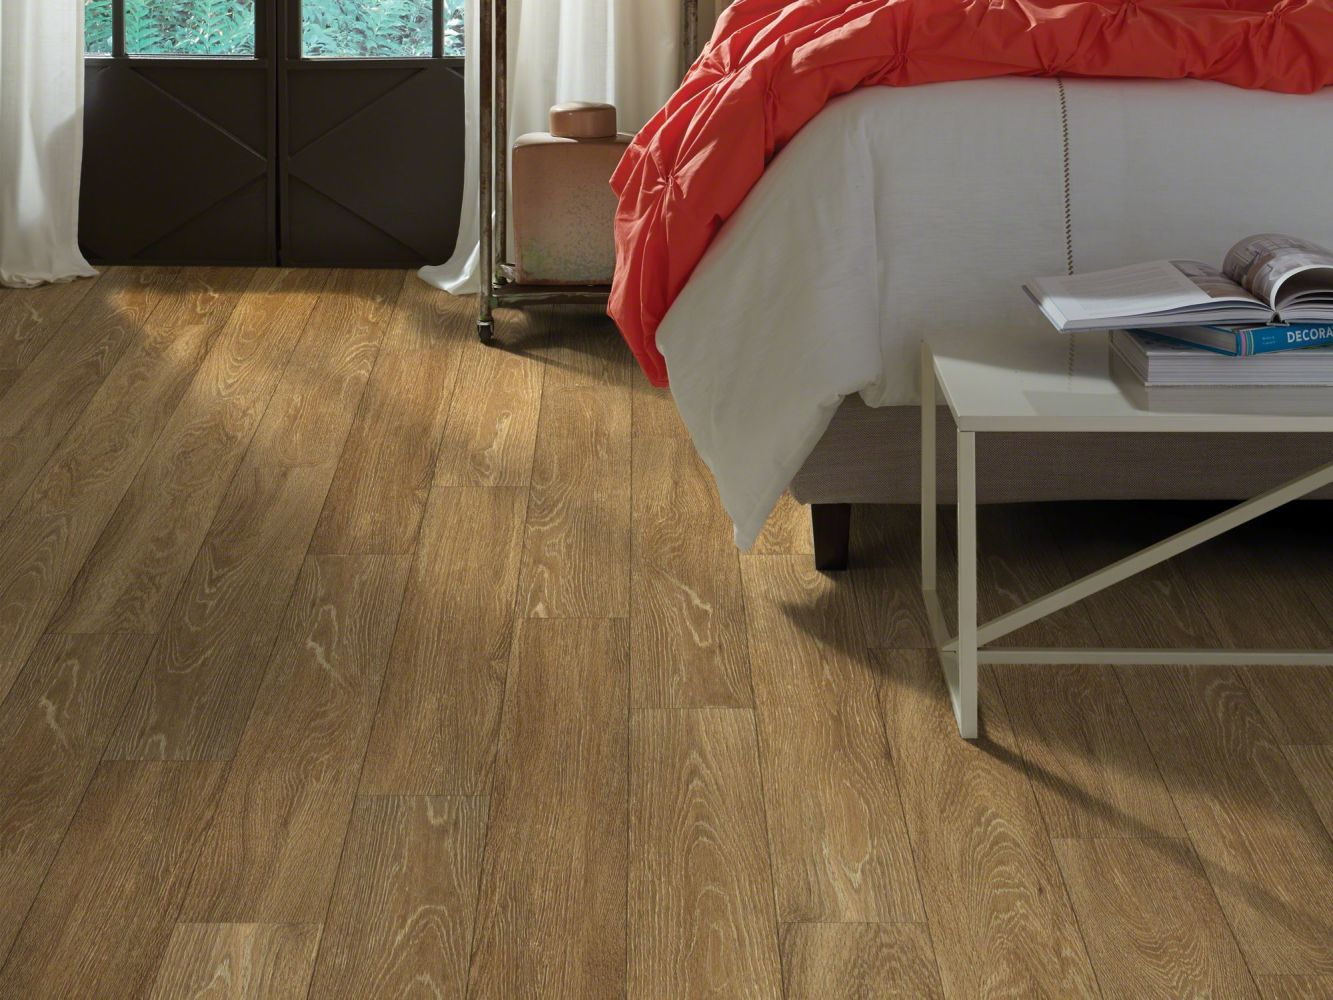 Shaw Floors Vinyl Residential Uptown Now Wpc+ Rush Street 00684_0999V